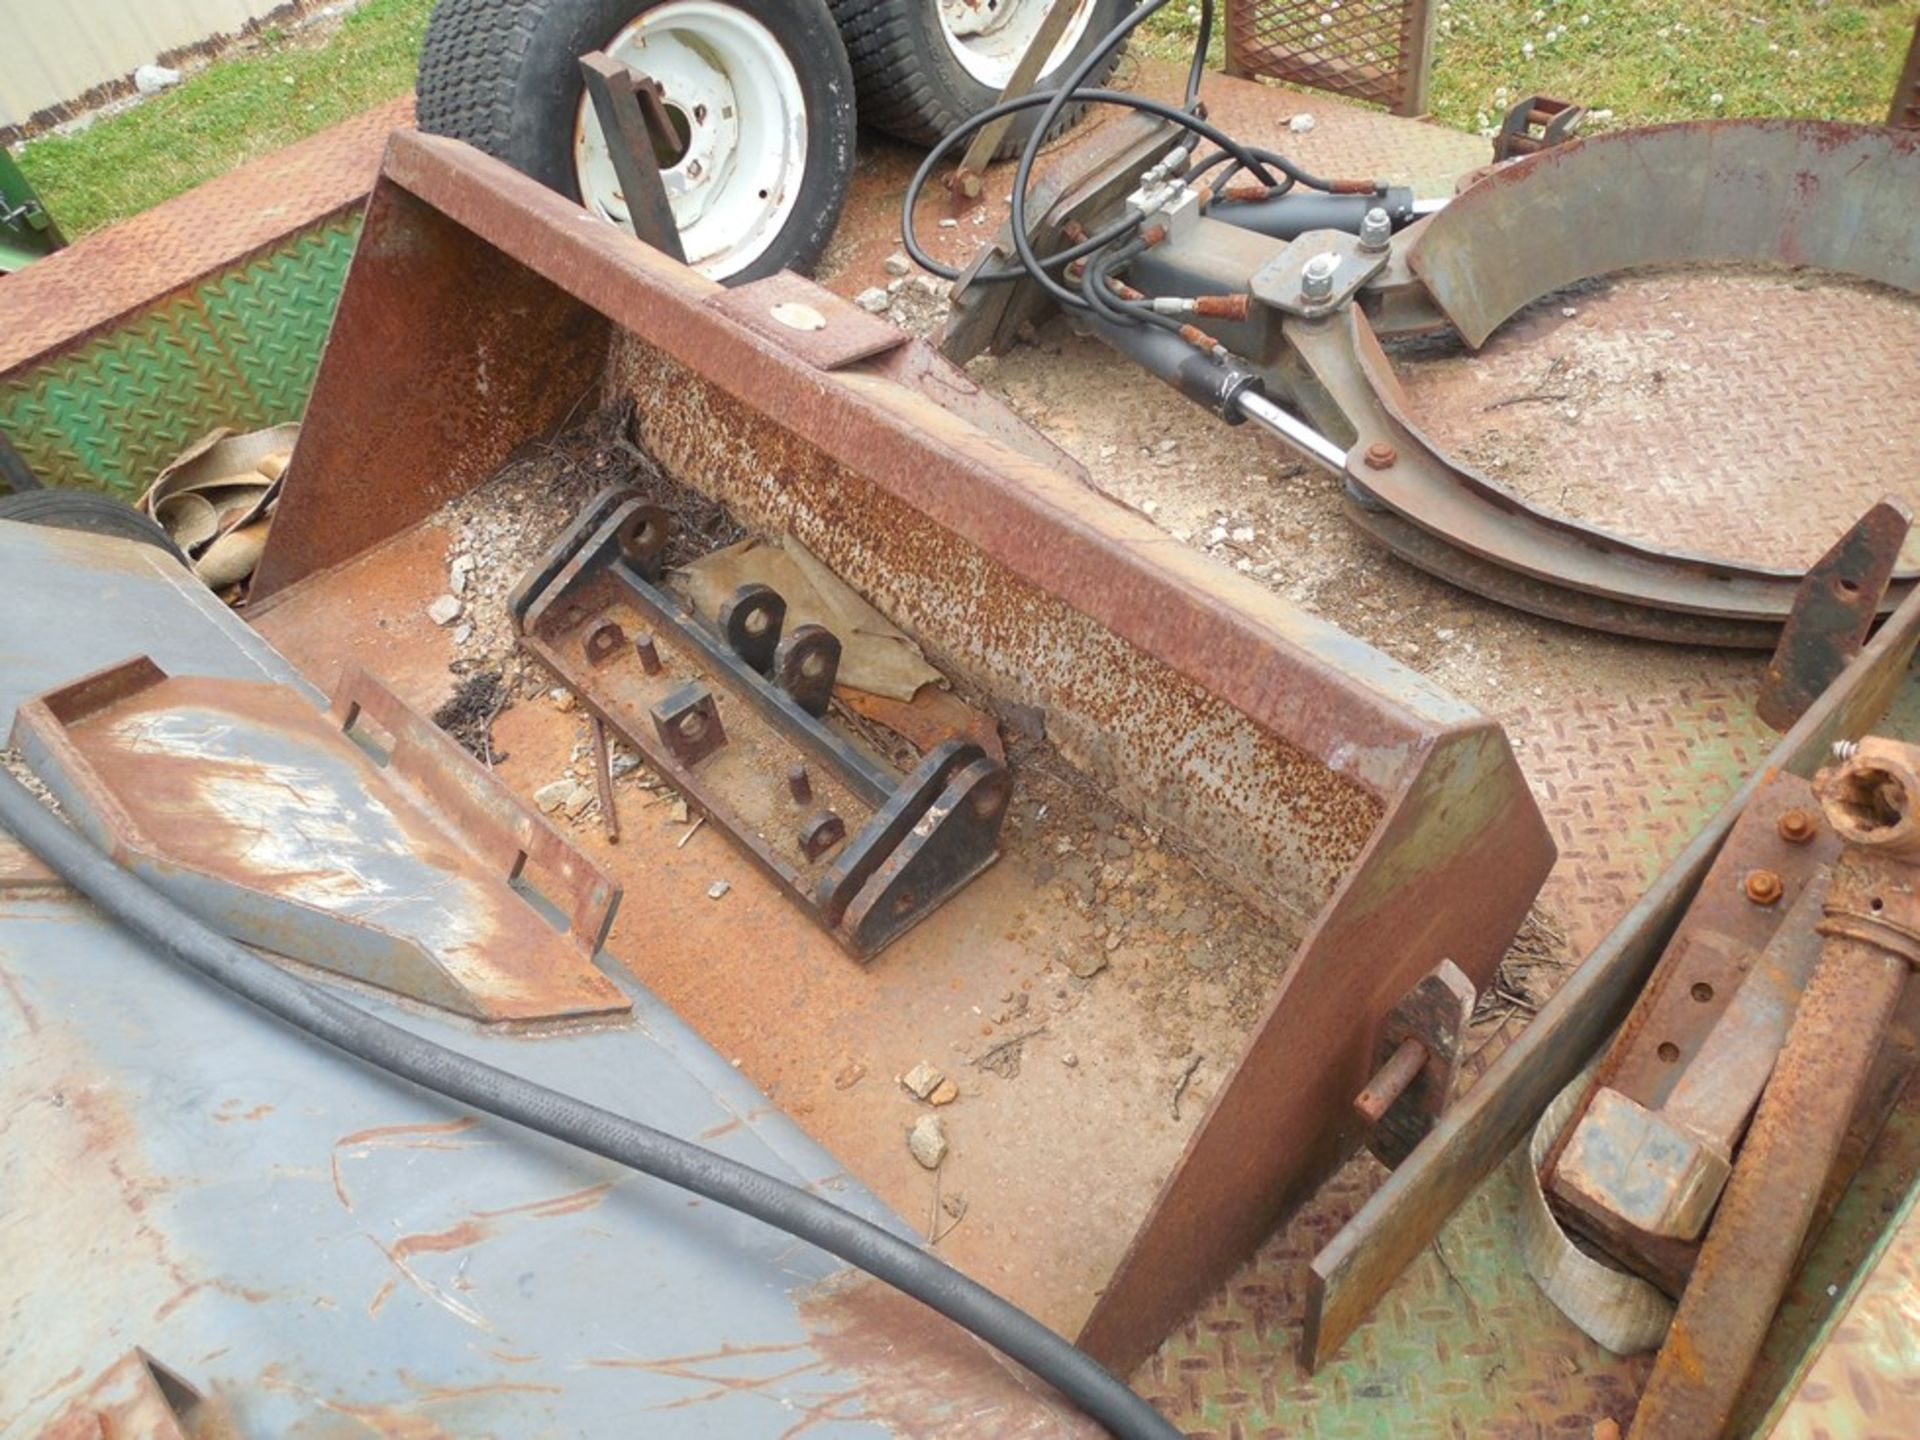 Power Trac PT-2425 Mini Skid Steer ser# 18928 with trailer, power rake, tree spade, front bucket, - Image 12 of 13